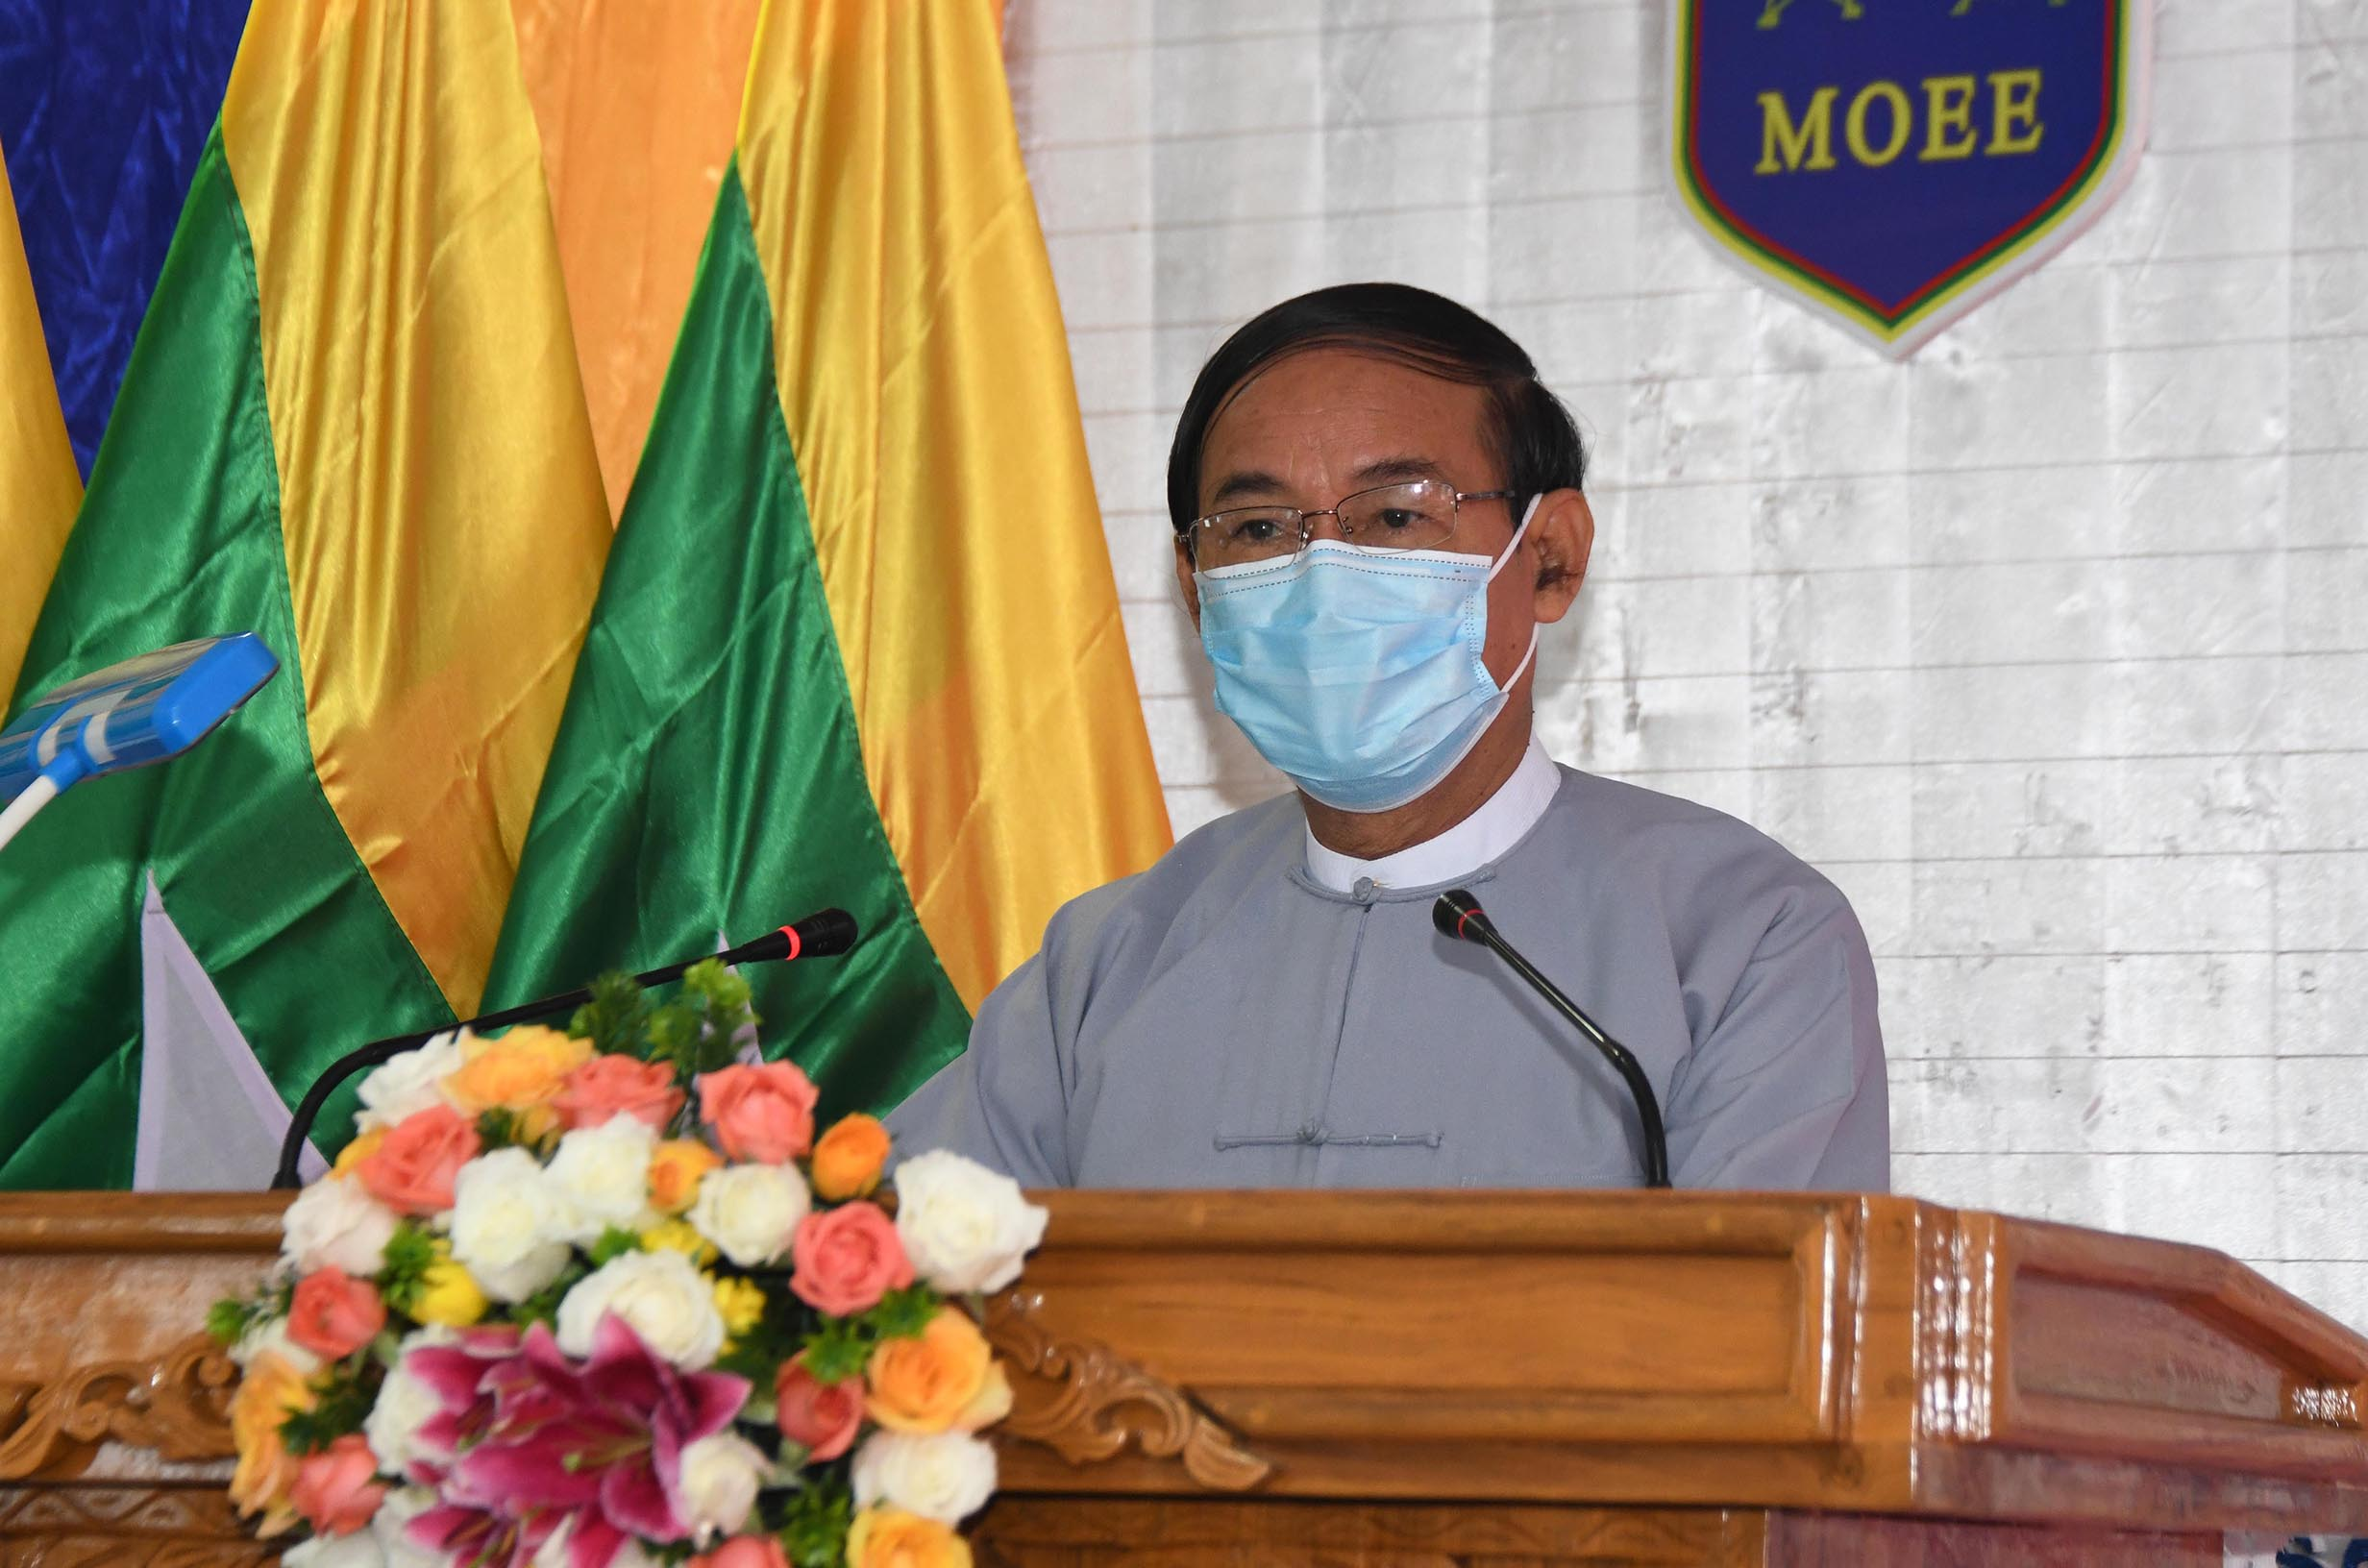 President U Win Myint speaks at ceremony to commission Main National Grid in Shan State (East), main electrical substations